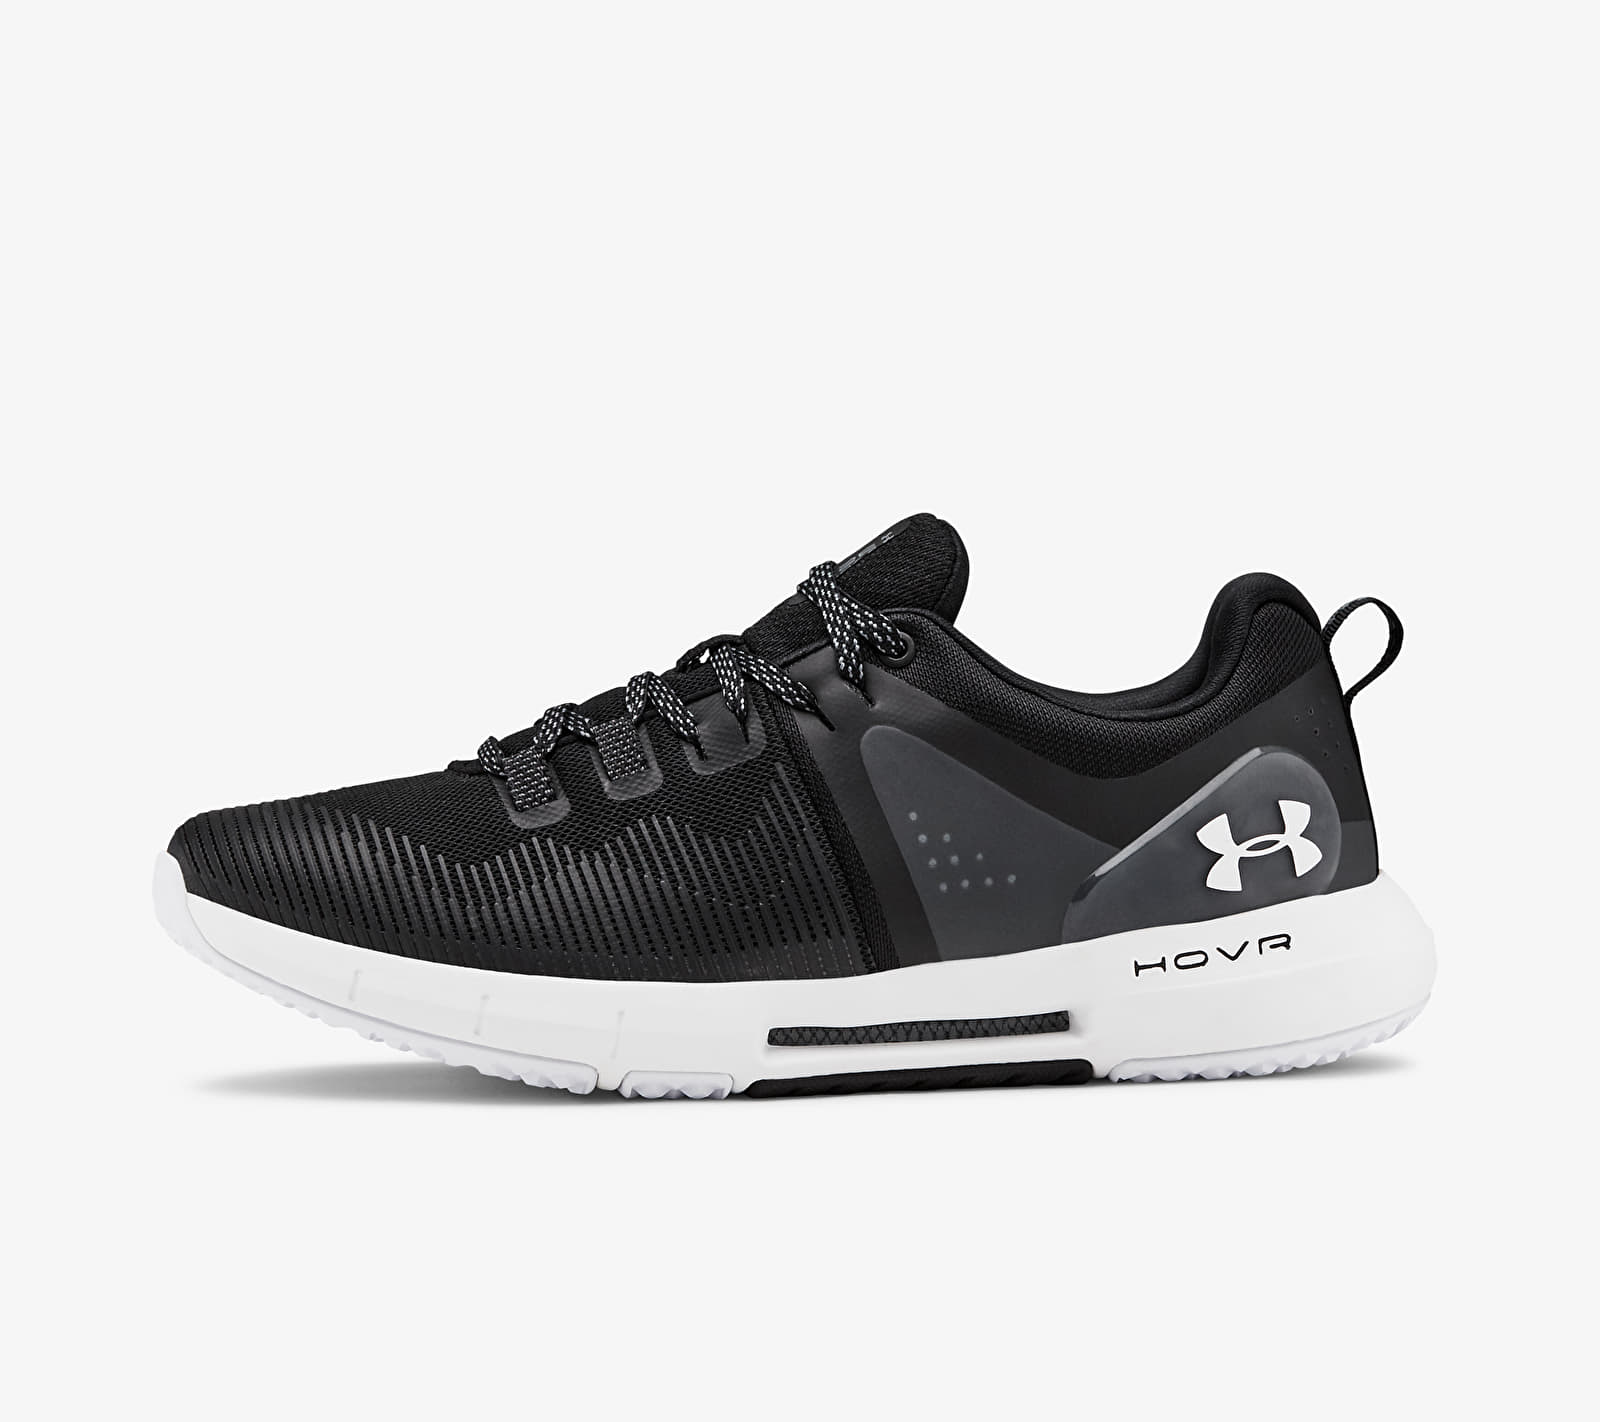 Under Armour W HOVR Rise Black/ White/ White 3022208-002